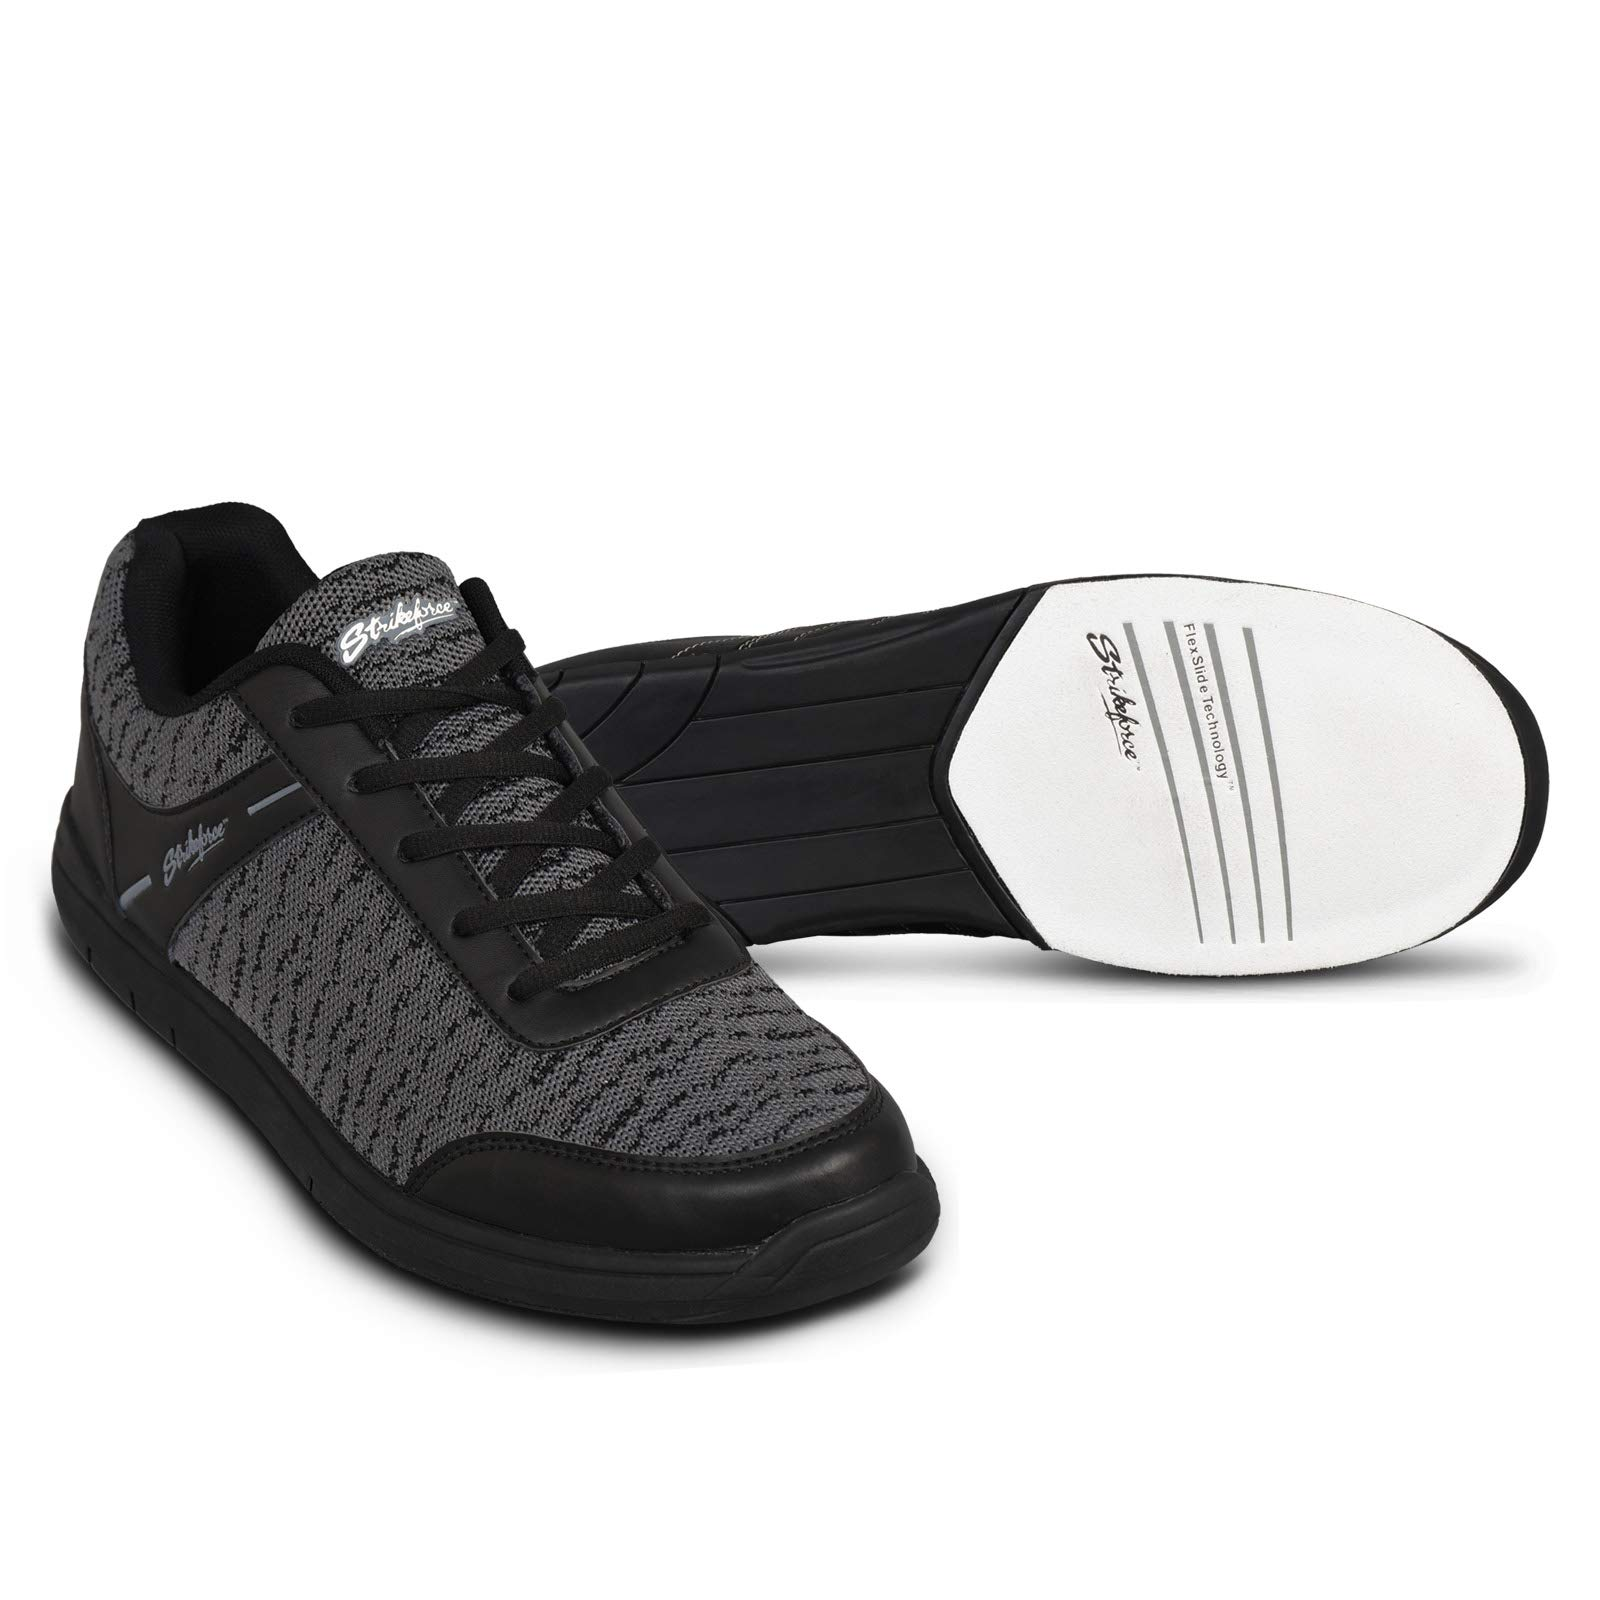 KR Strikeforce Men's Flyer Mesh Bowling Shoes, Black/Steel, Size 15 by KR Strikeforce